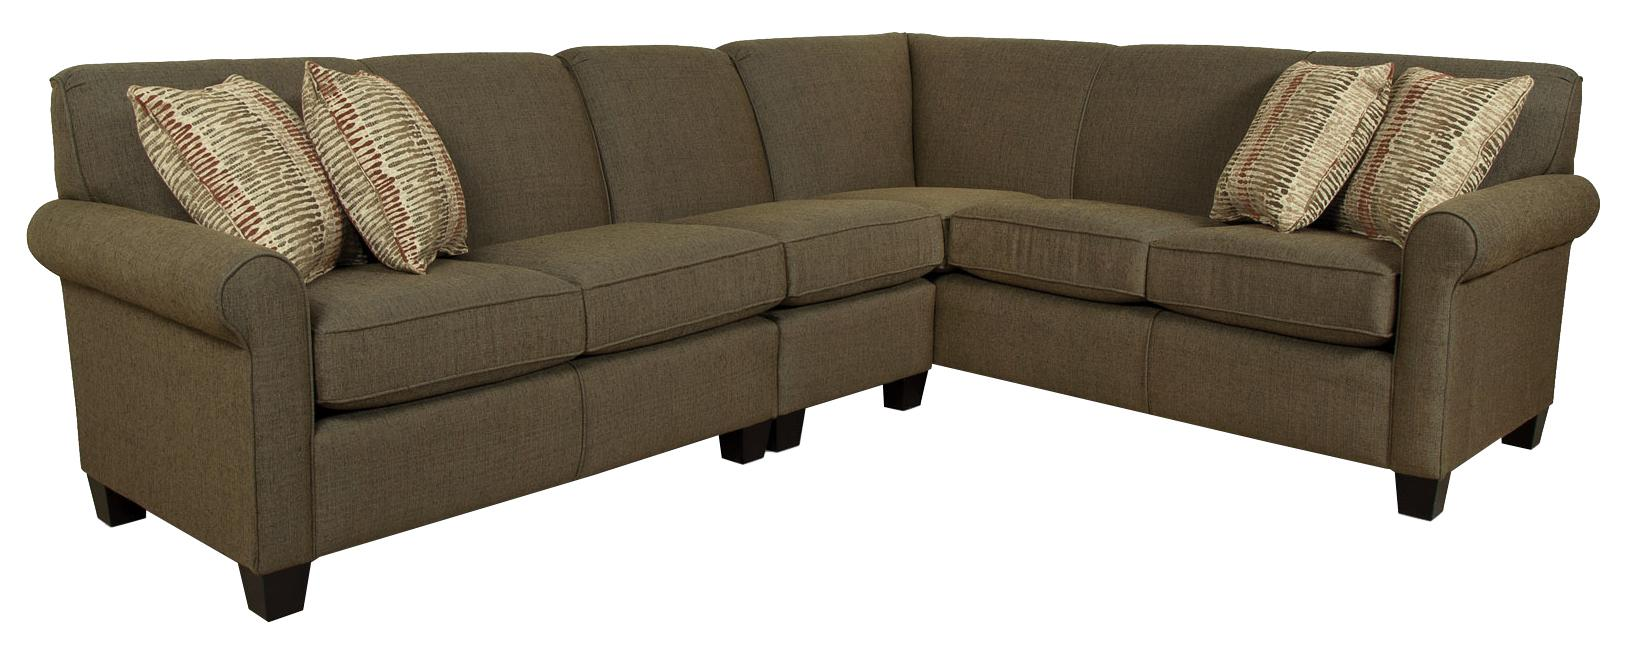 Abalone Sectional Sofa by England at EFO Furniture Outlet